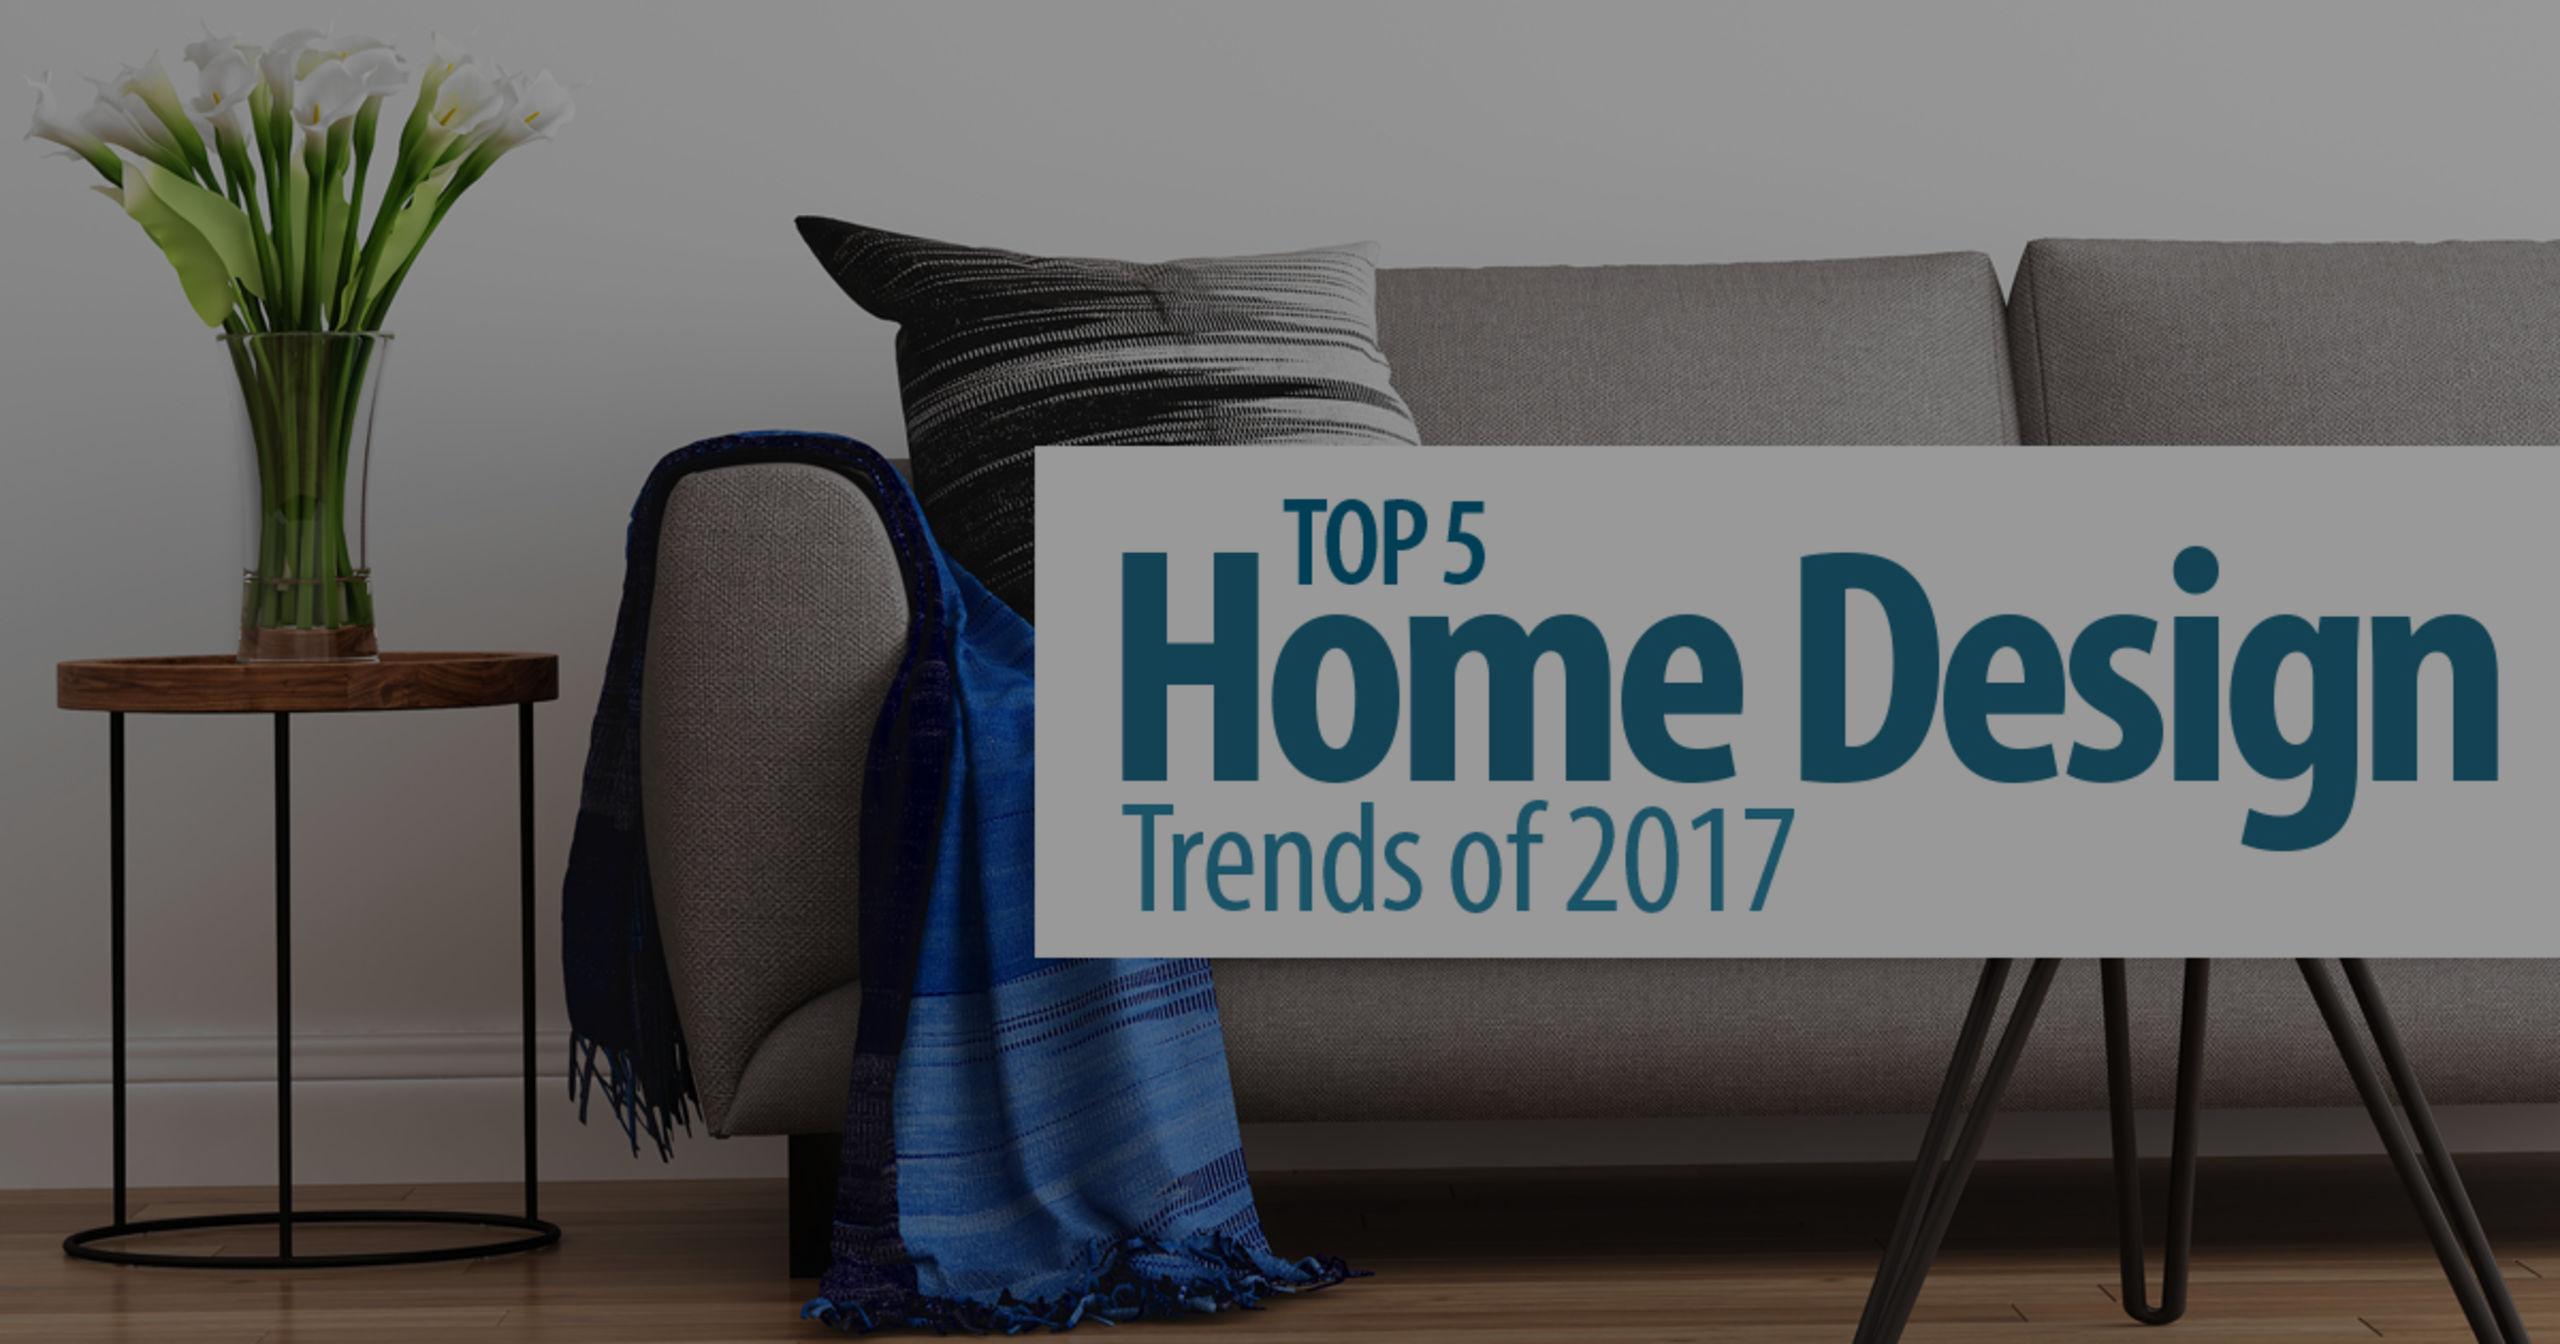 Top 5 Home Design Trends for 2017